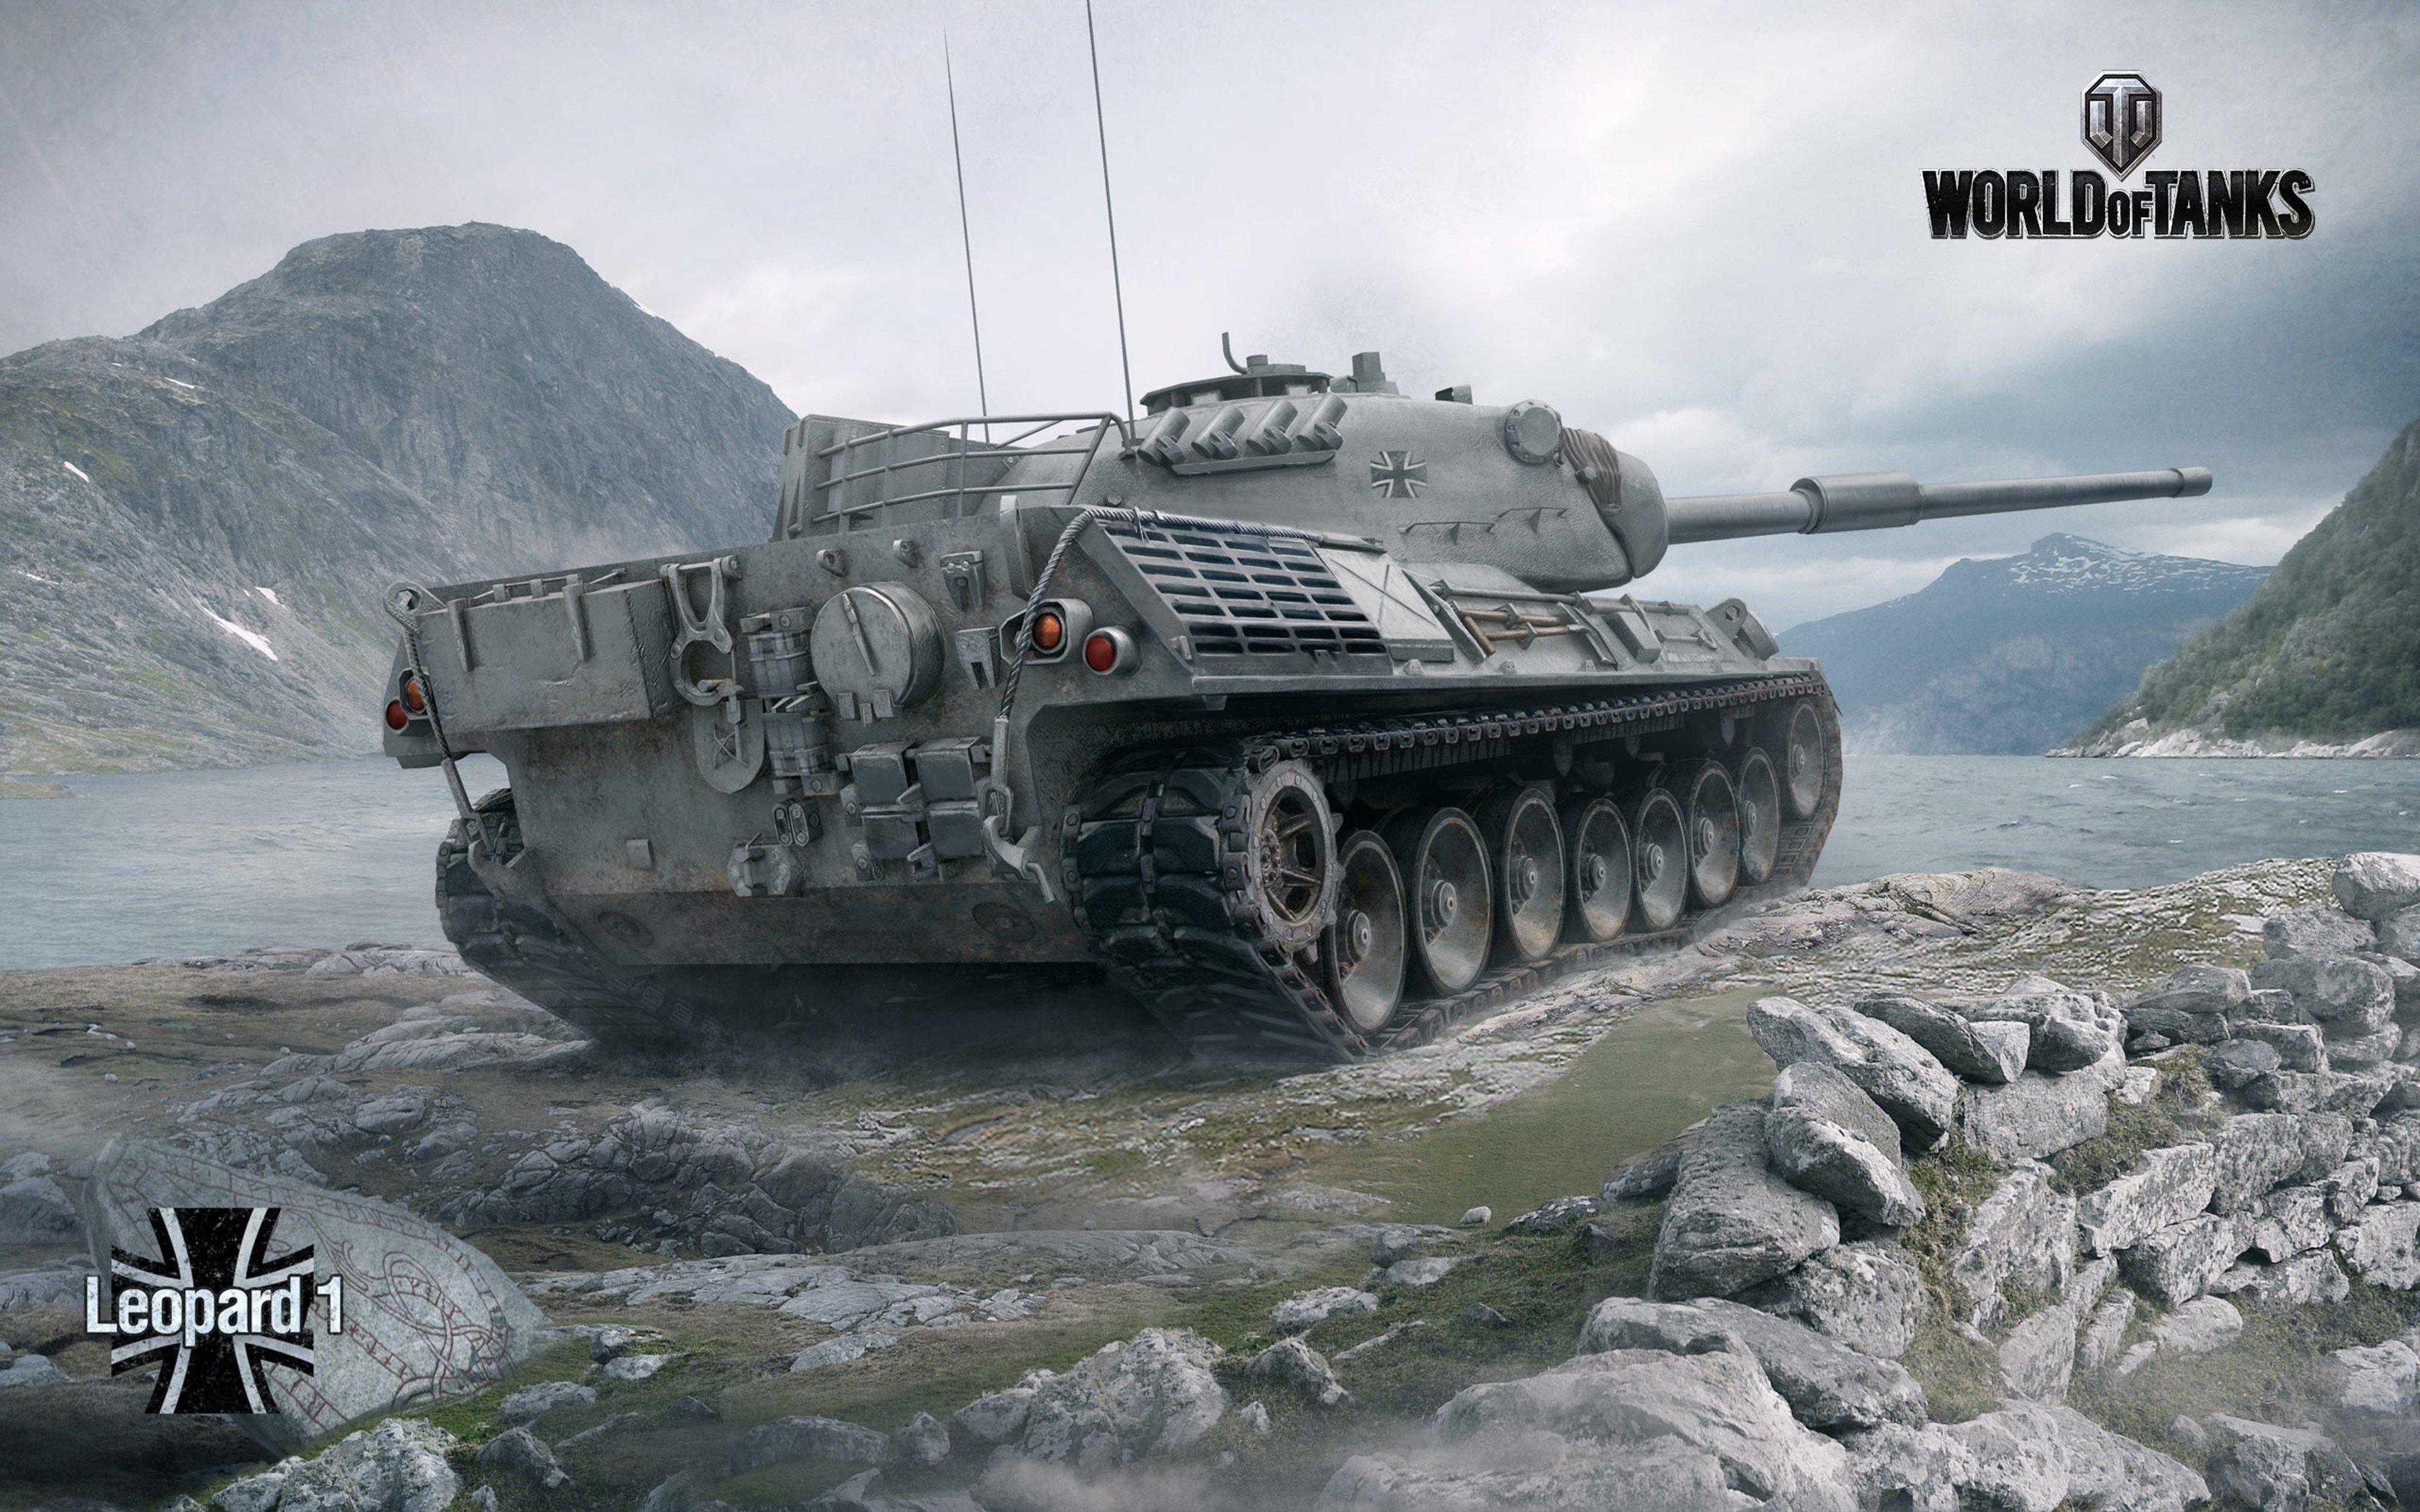 leopard-1 world-of-tanks game 4000x2500